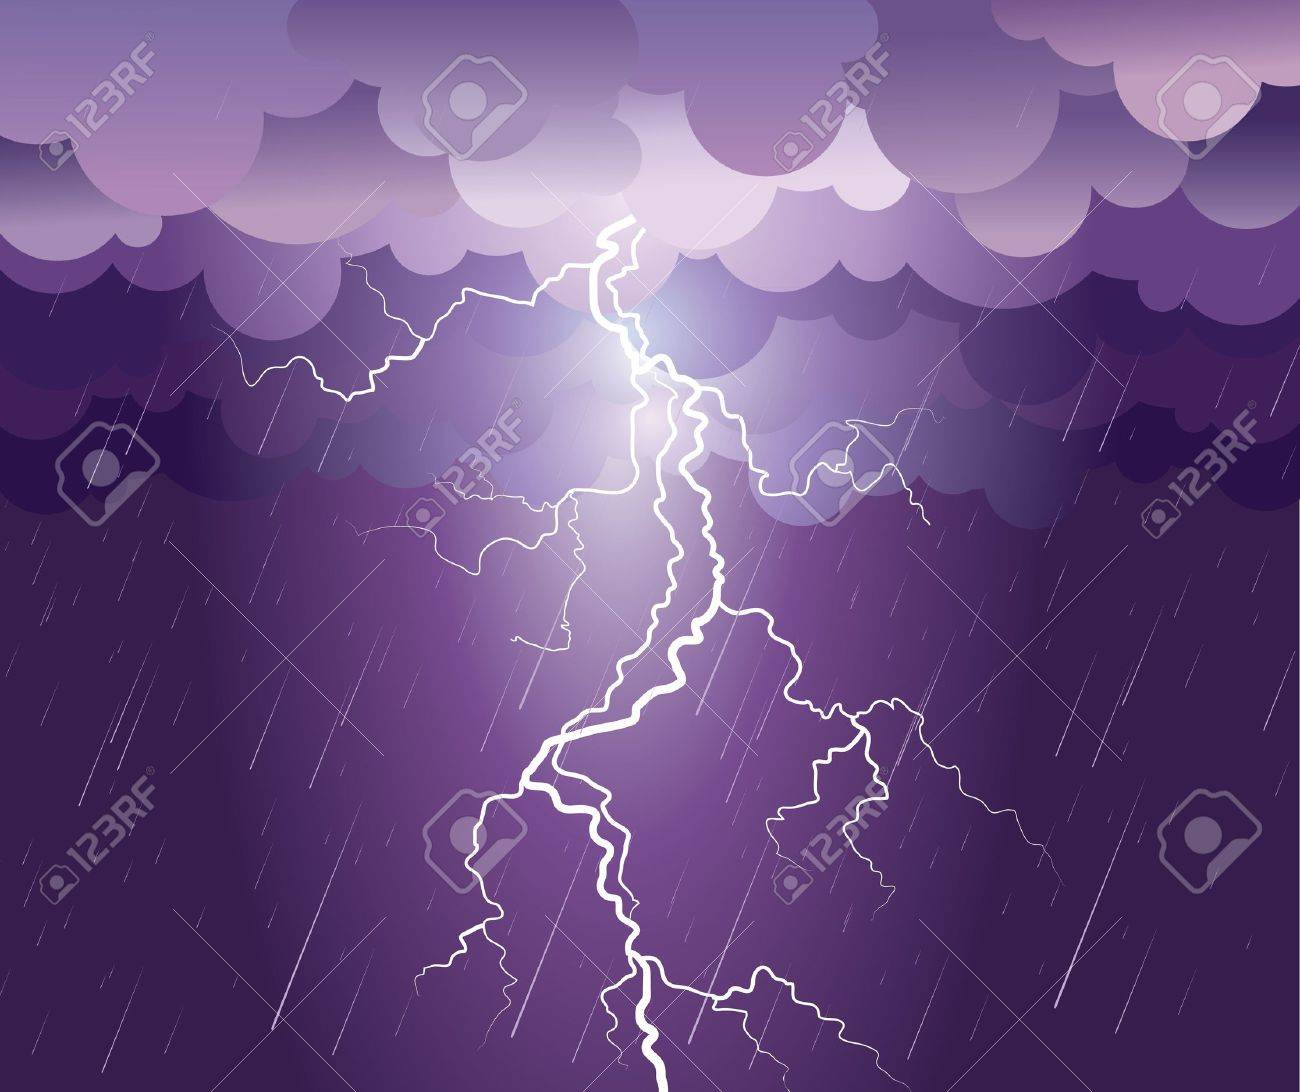 Lightning strike.rain image with dark clouds Stock Vector - 9923591